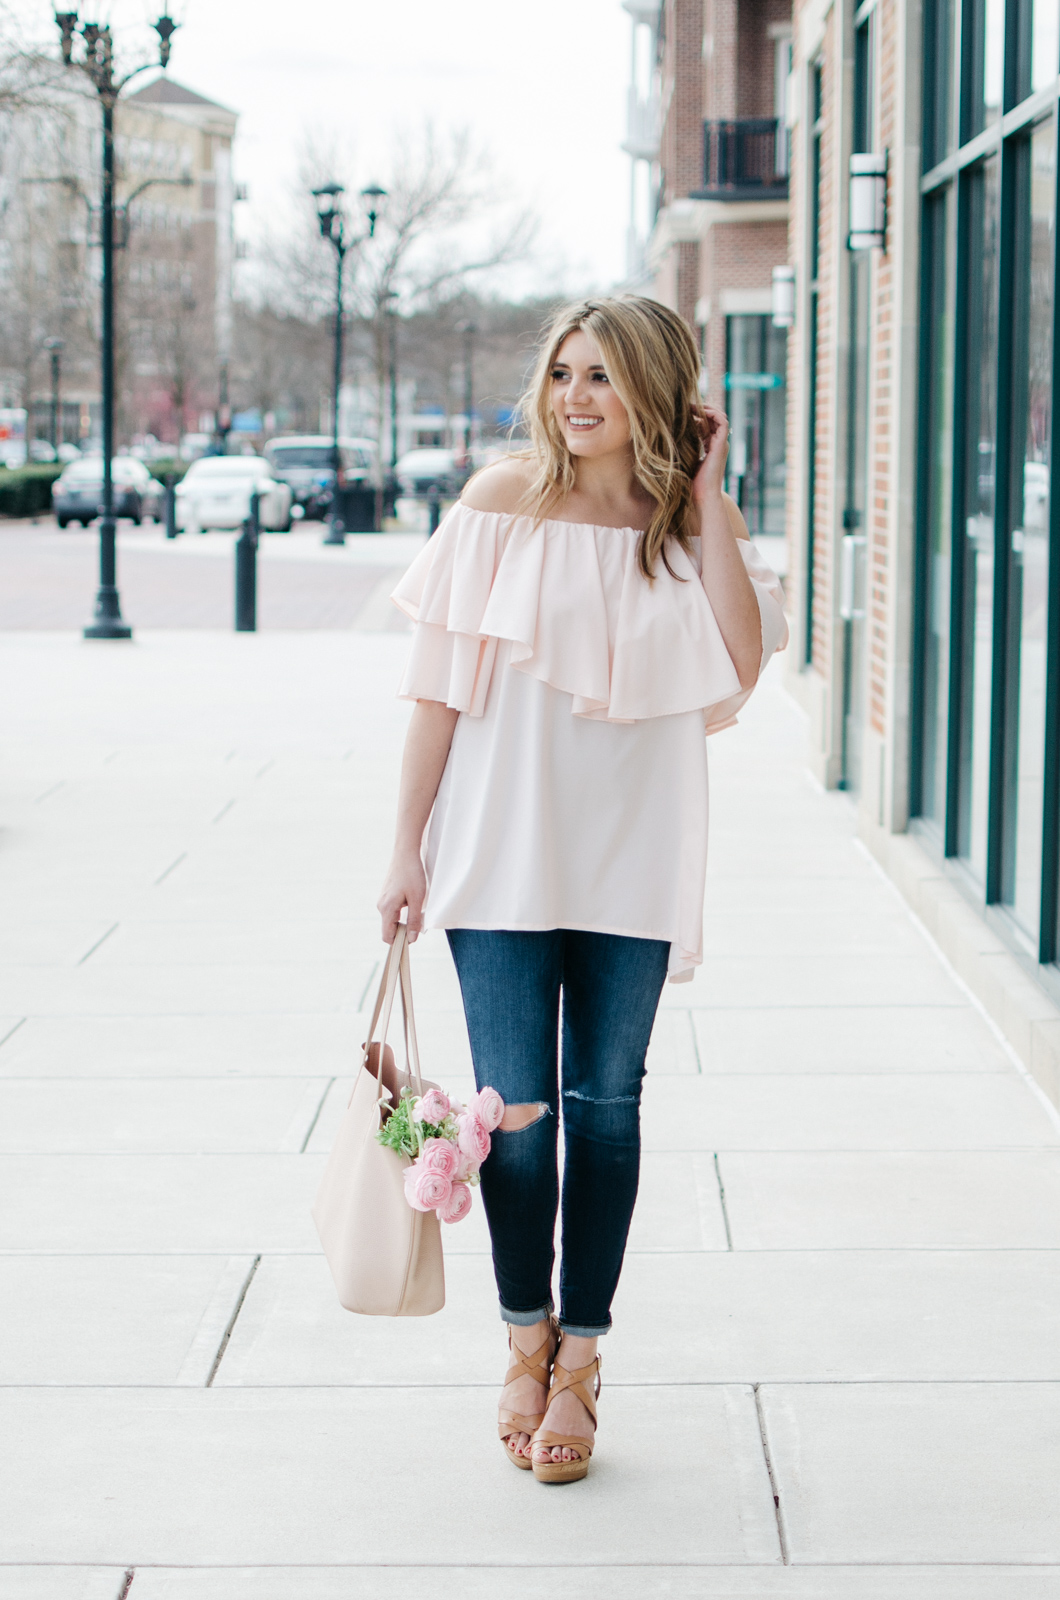 blush spring outfit - girly outfit for spring | For more pretty Spring outfits or to shop this look, head to bylaurenm.com!